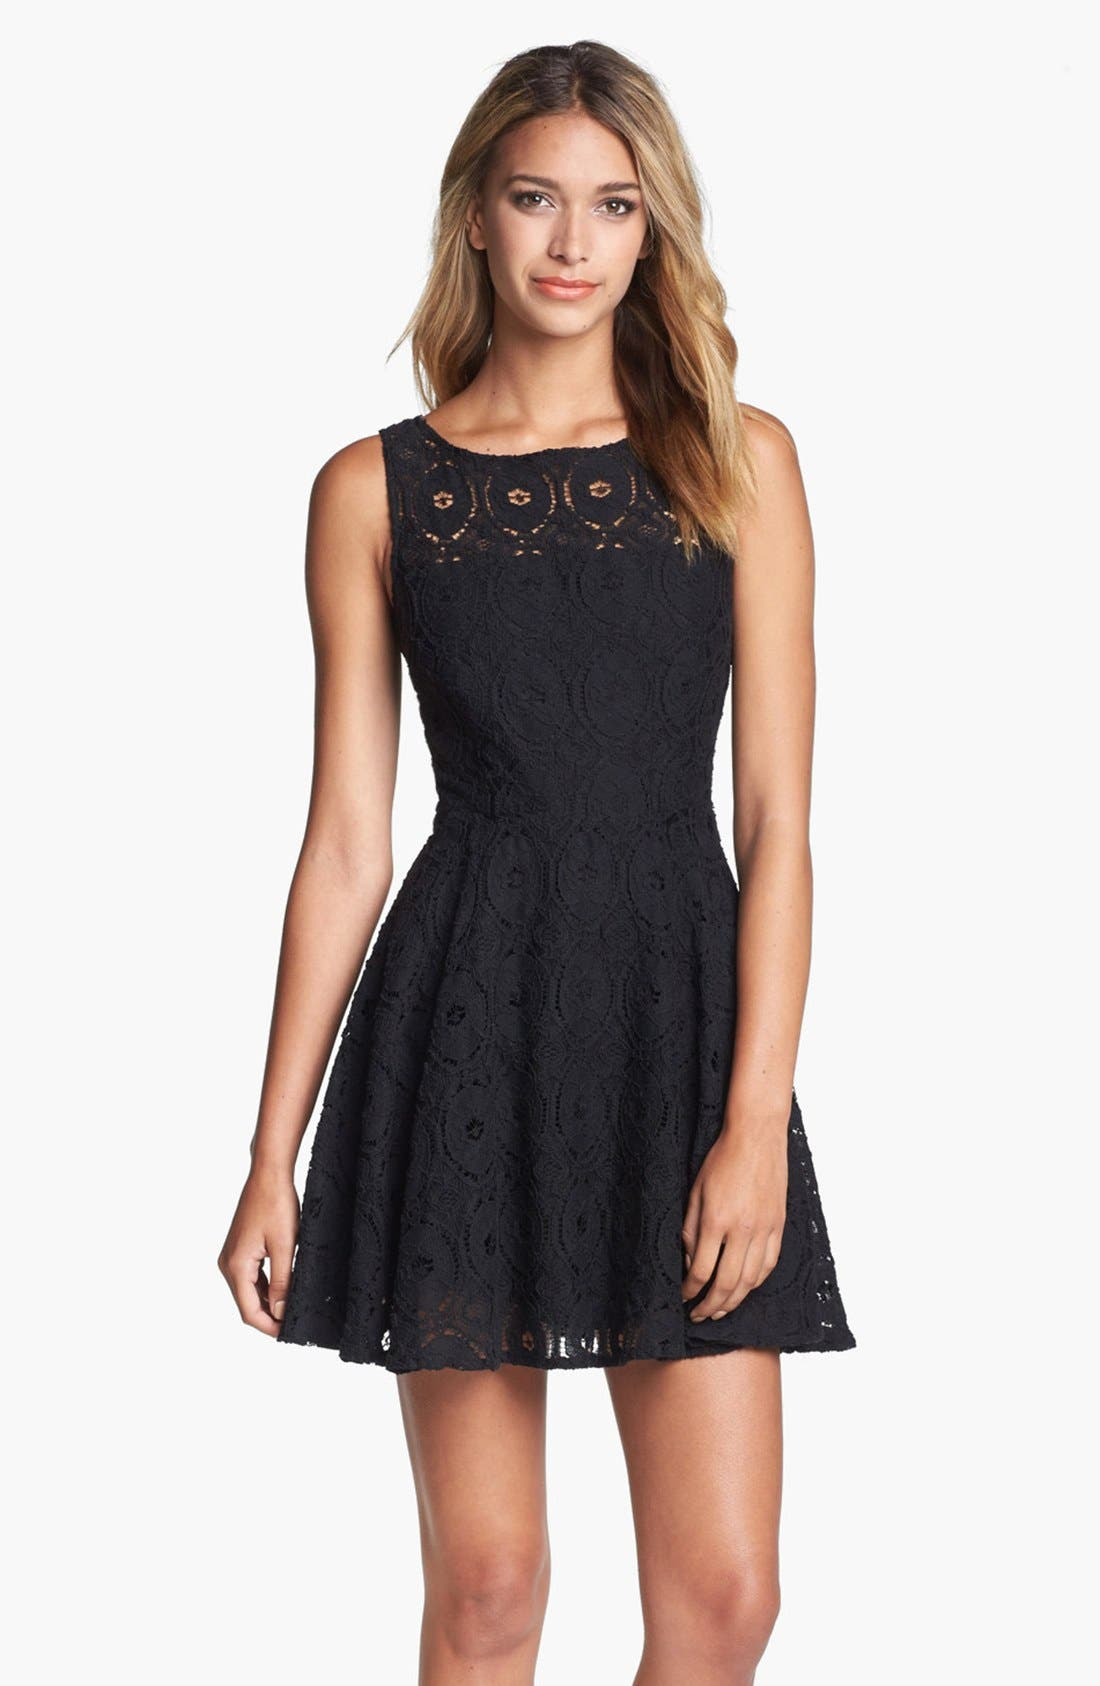 Black dress nordstrom 92122